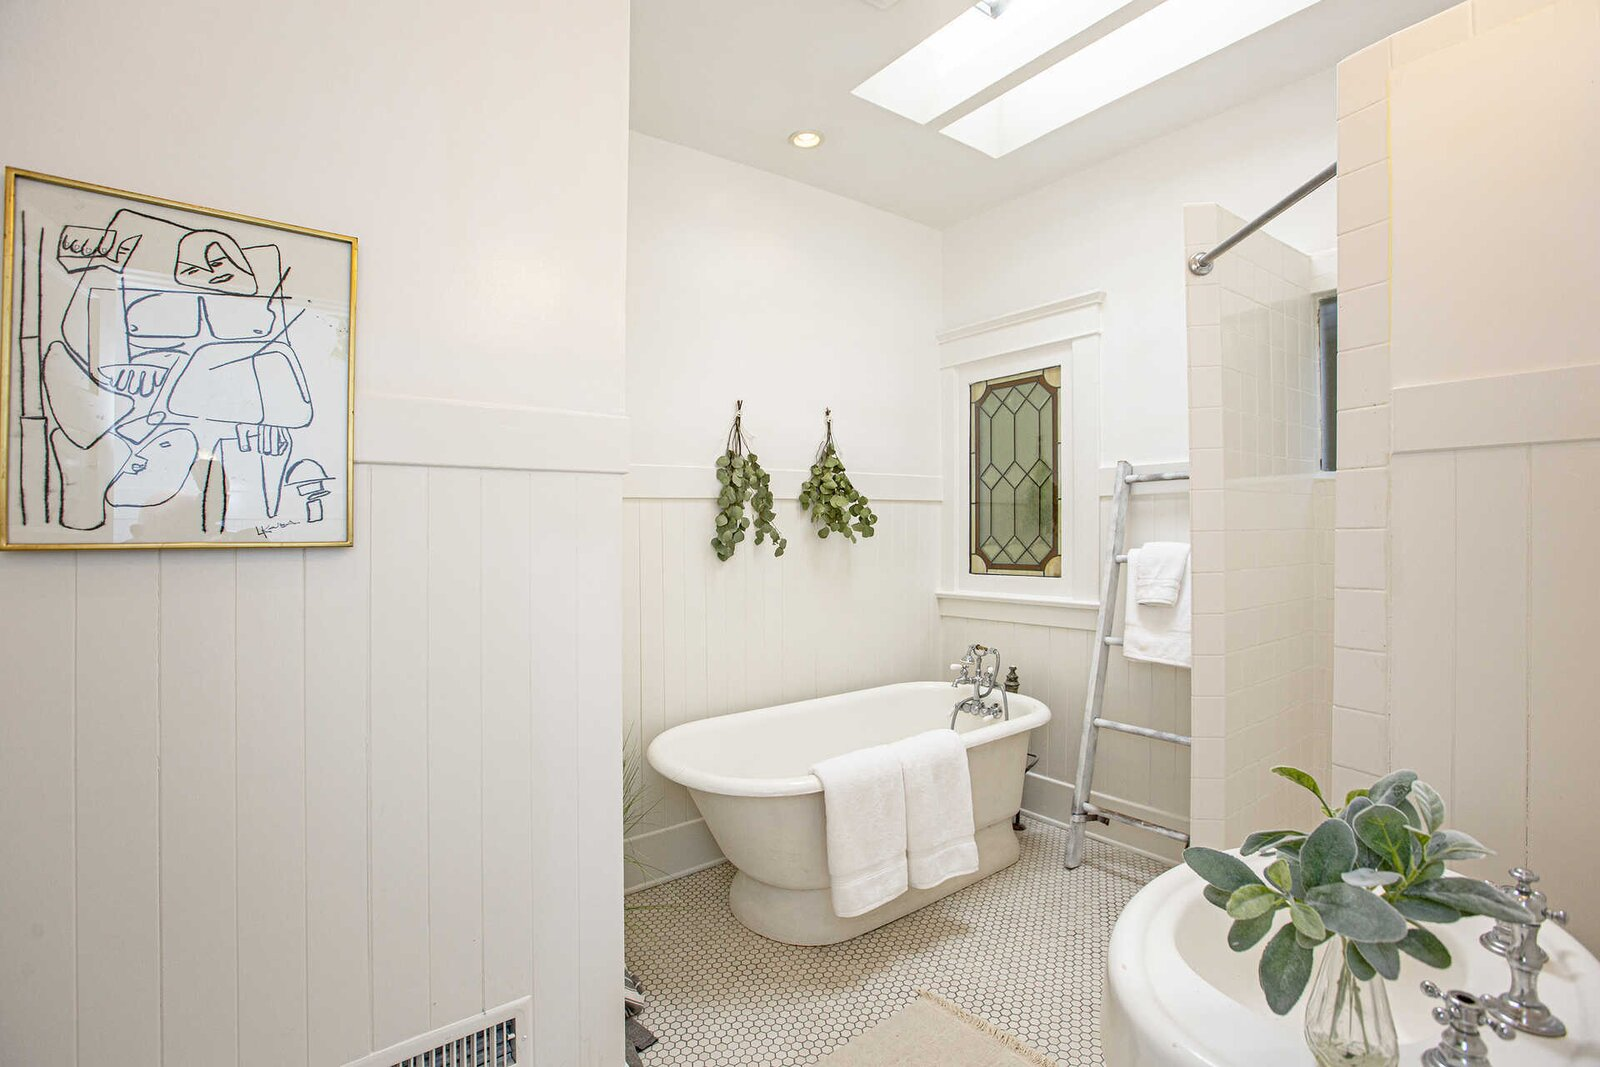 """The adjacent bathroom is also illuminated by a skylight above the shower and soaking tub. A stained-glass window, pedestal sink, and tile floors add additional character.  Photo 9 of 14 in """"Last Man on Earth"""" Creator Will Forte Puts His Santa Monica Craftsman on the Market for $2.45M"""